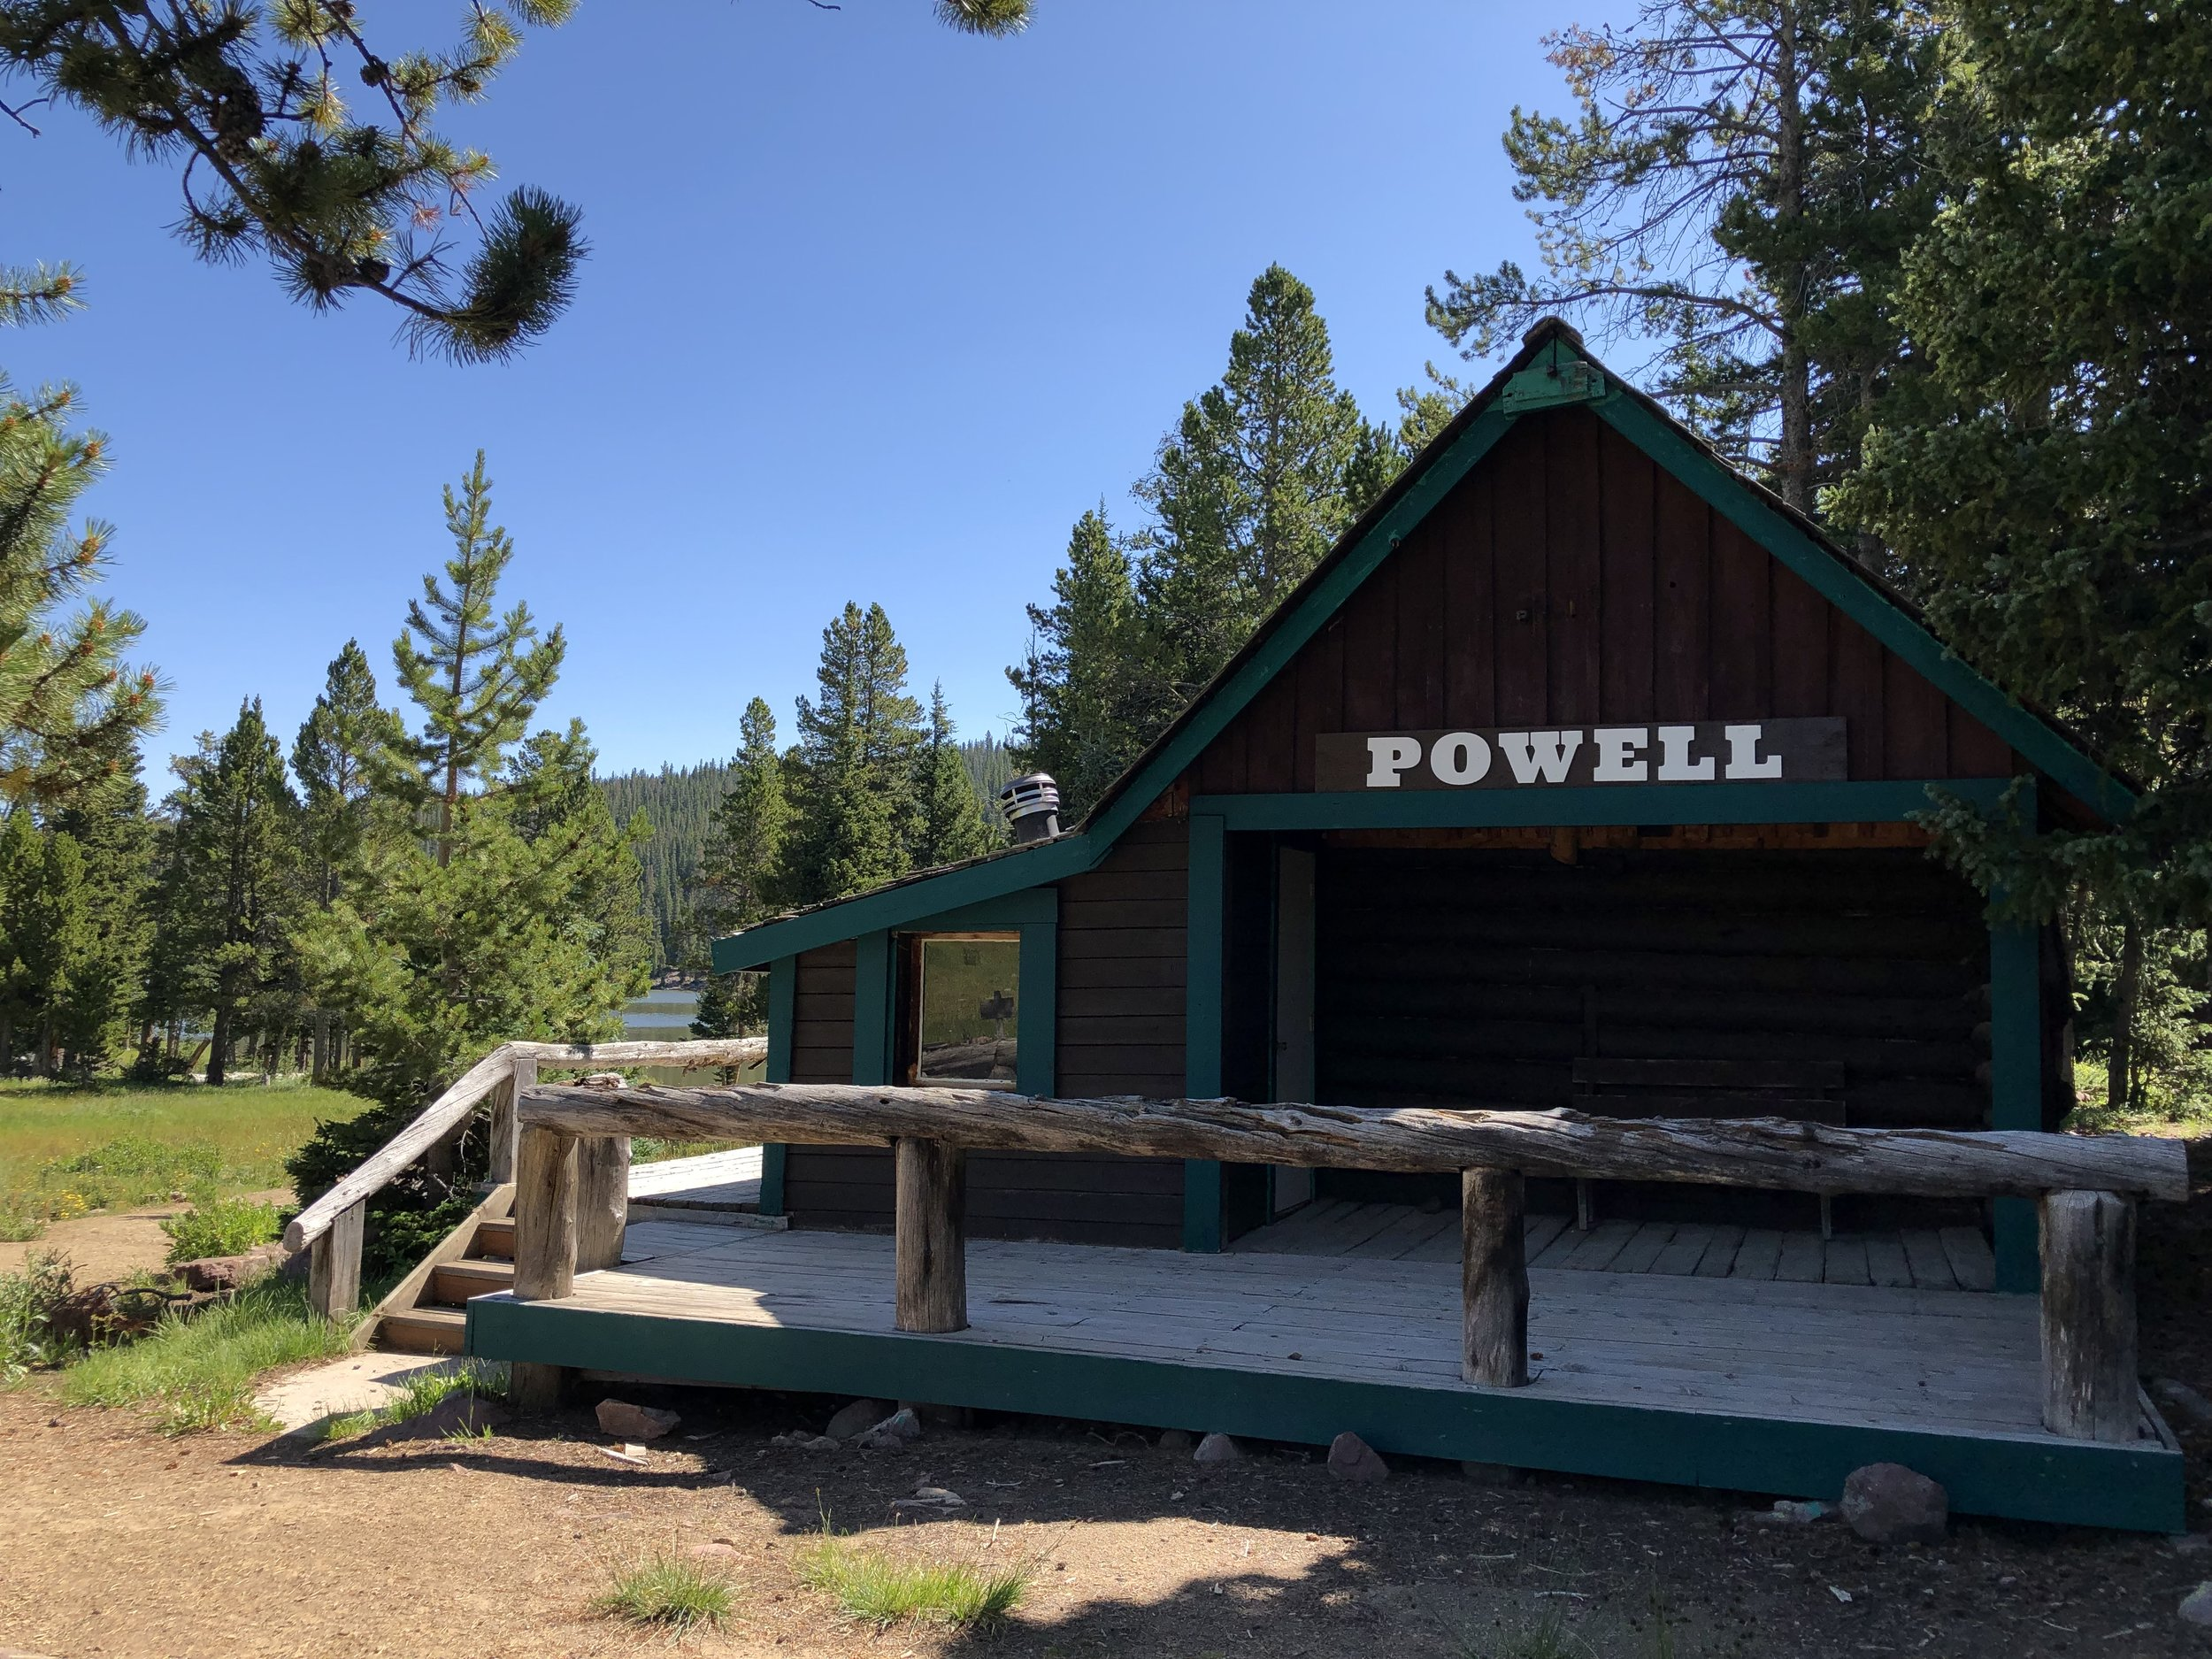 """Powell - Sleeps 6 - 436 sq/ft Cabin With LoftTwo Full Beds On Main LevelTwo Twin Beds In Small """"A"""" Frame LoftClosest Cabin To The LakePricingSunday - Thursday 